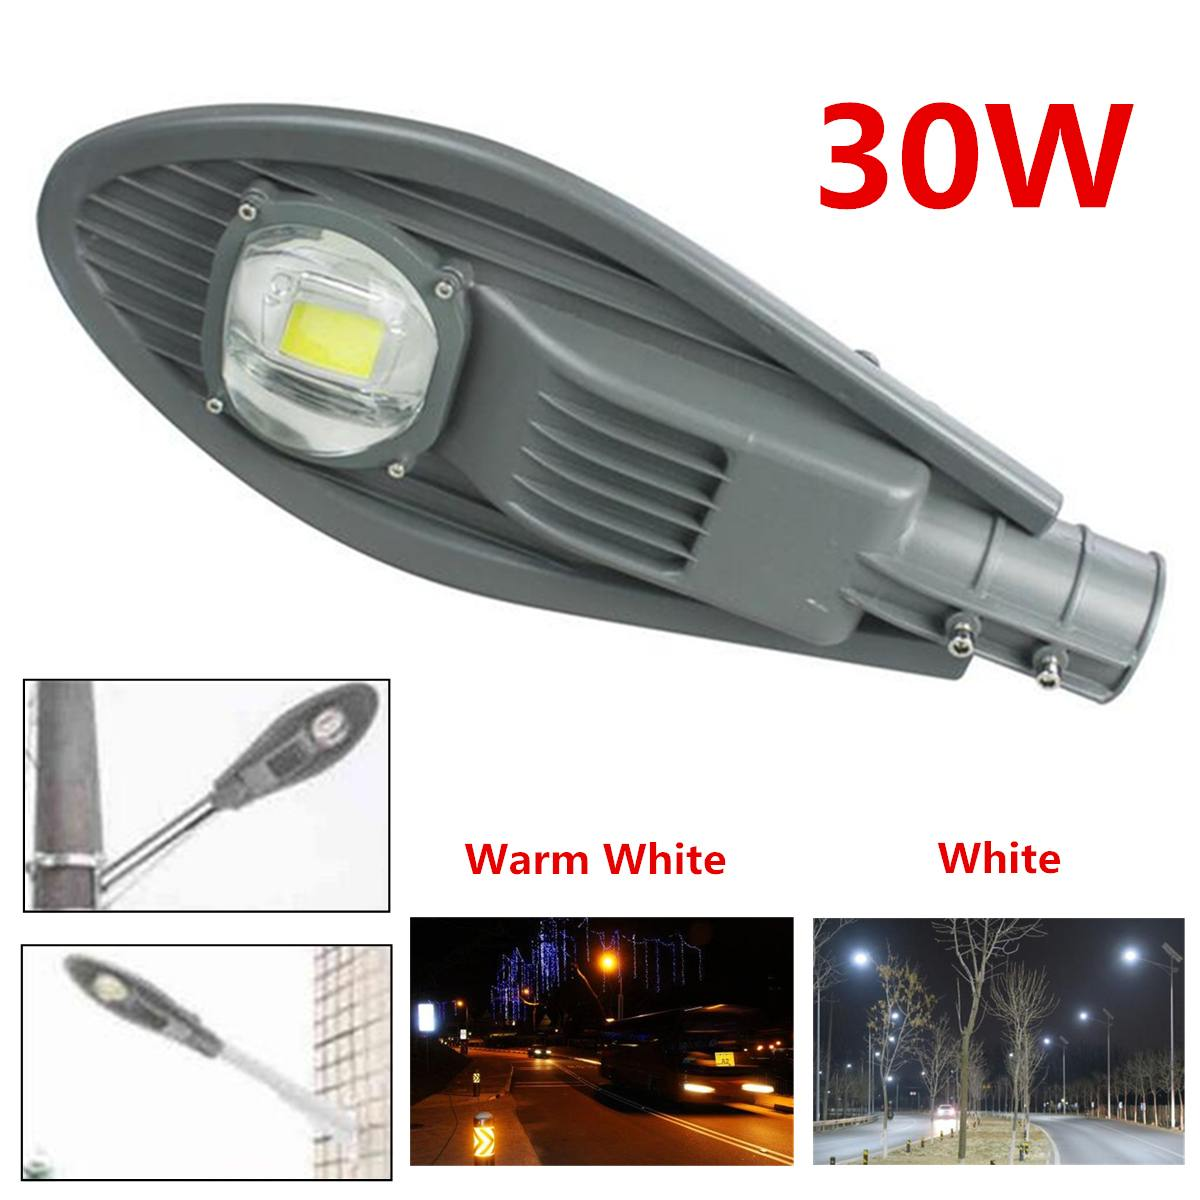 Grey 30W LED Street Light Waterproof Outdoor Night Lamp Park Square Road Hotel Bridge  Light Decoration Outdoor Lighting